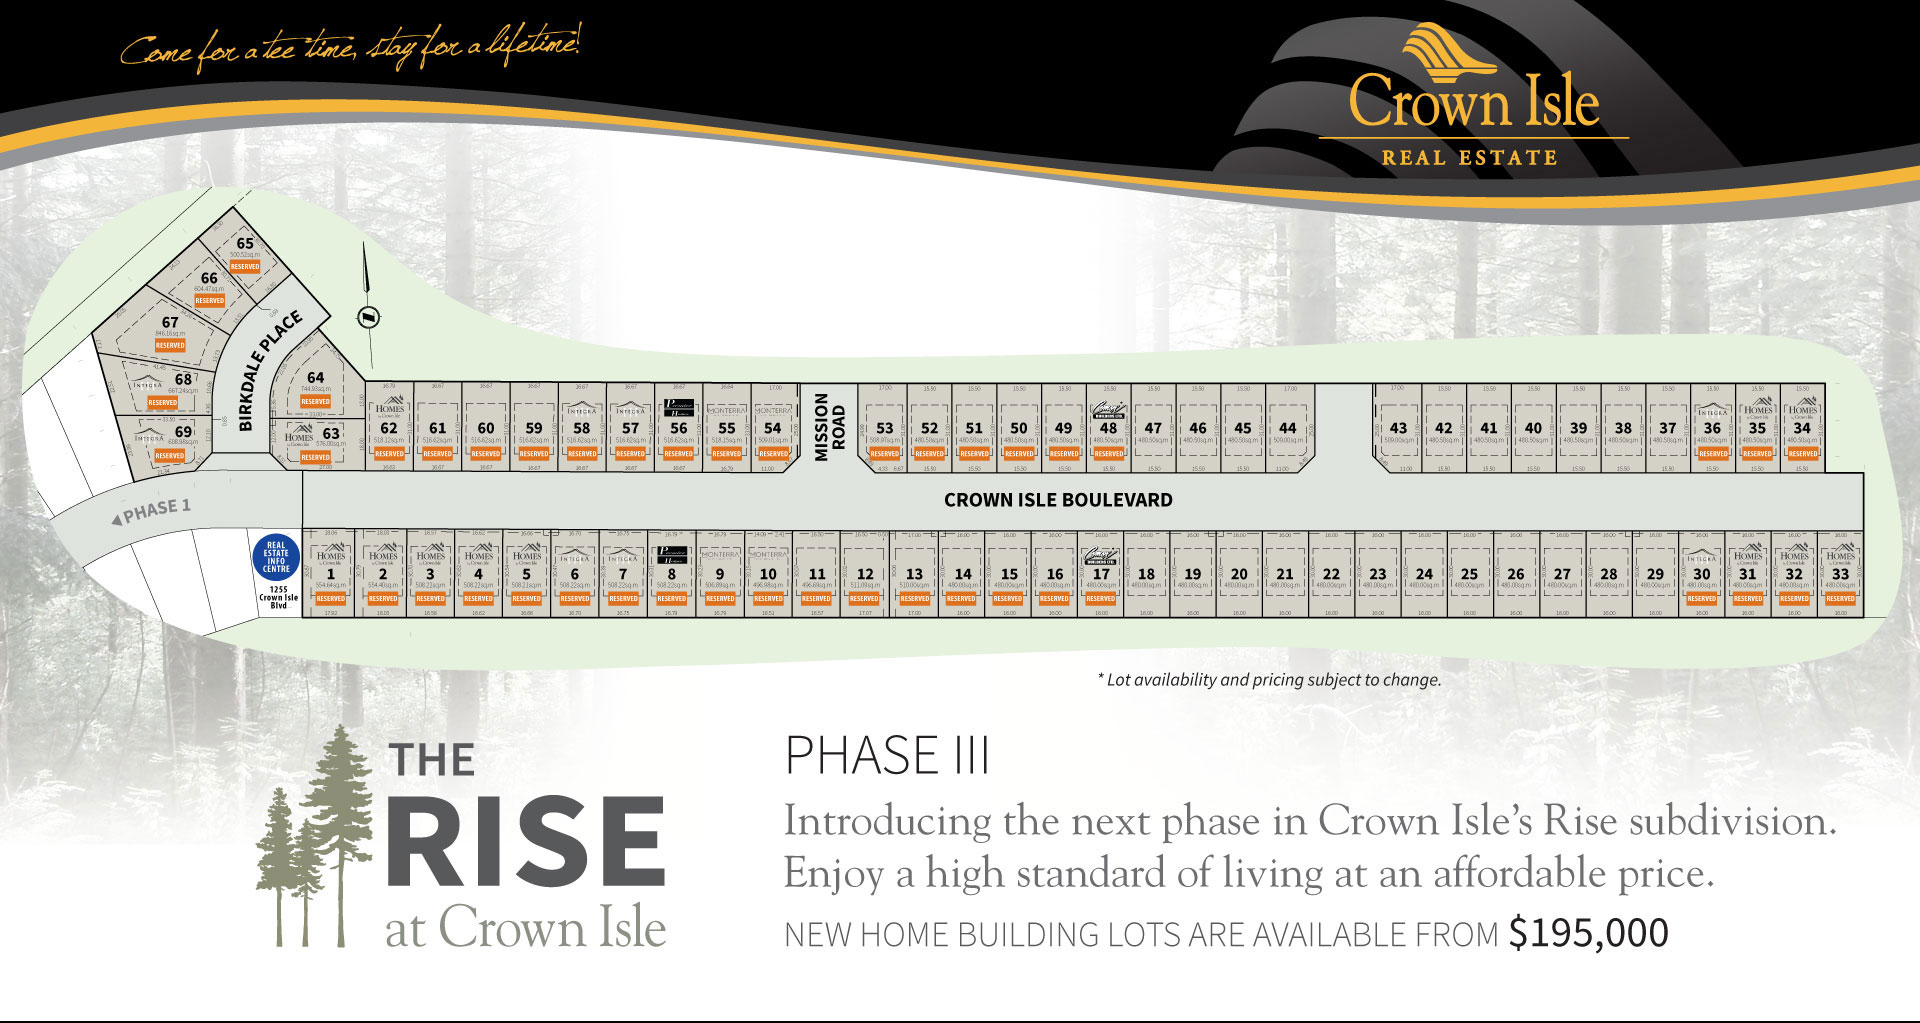 crown isle real estate